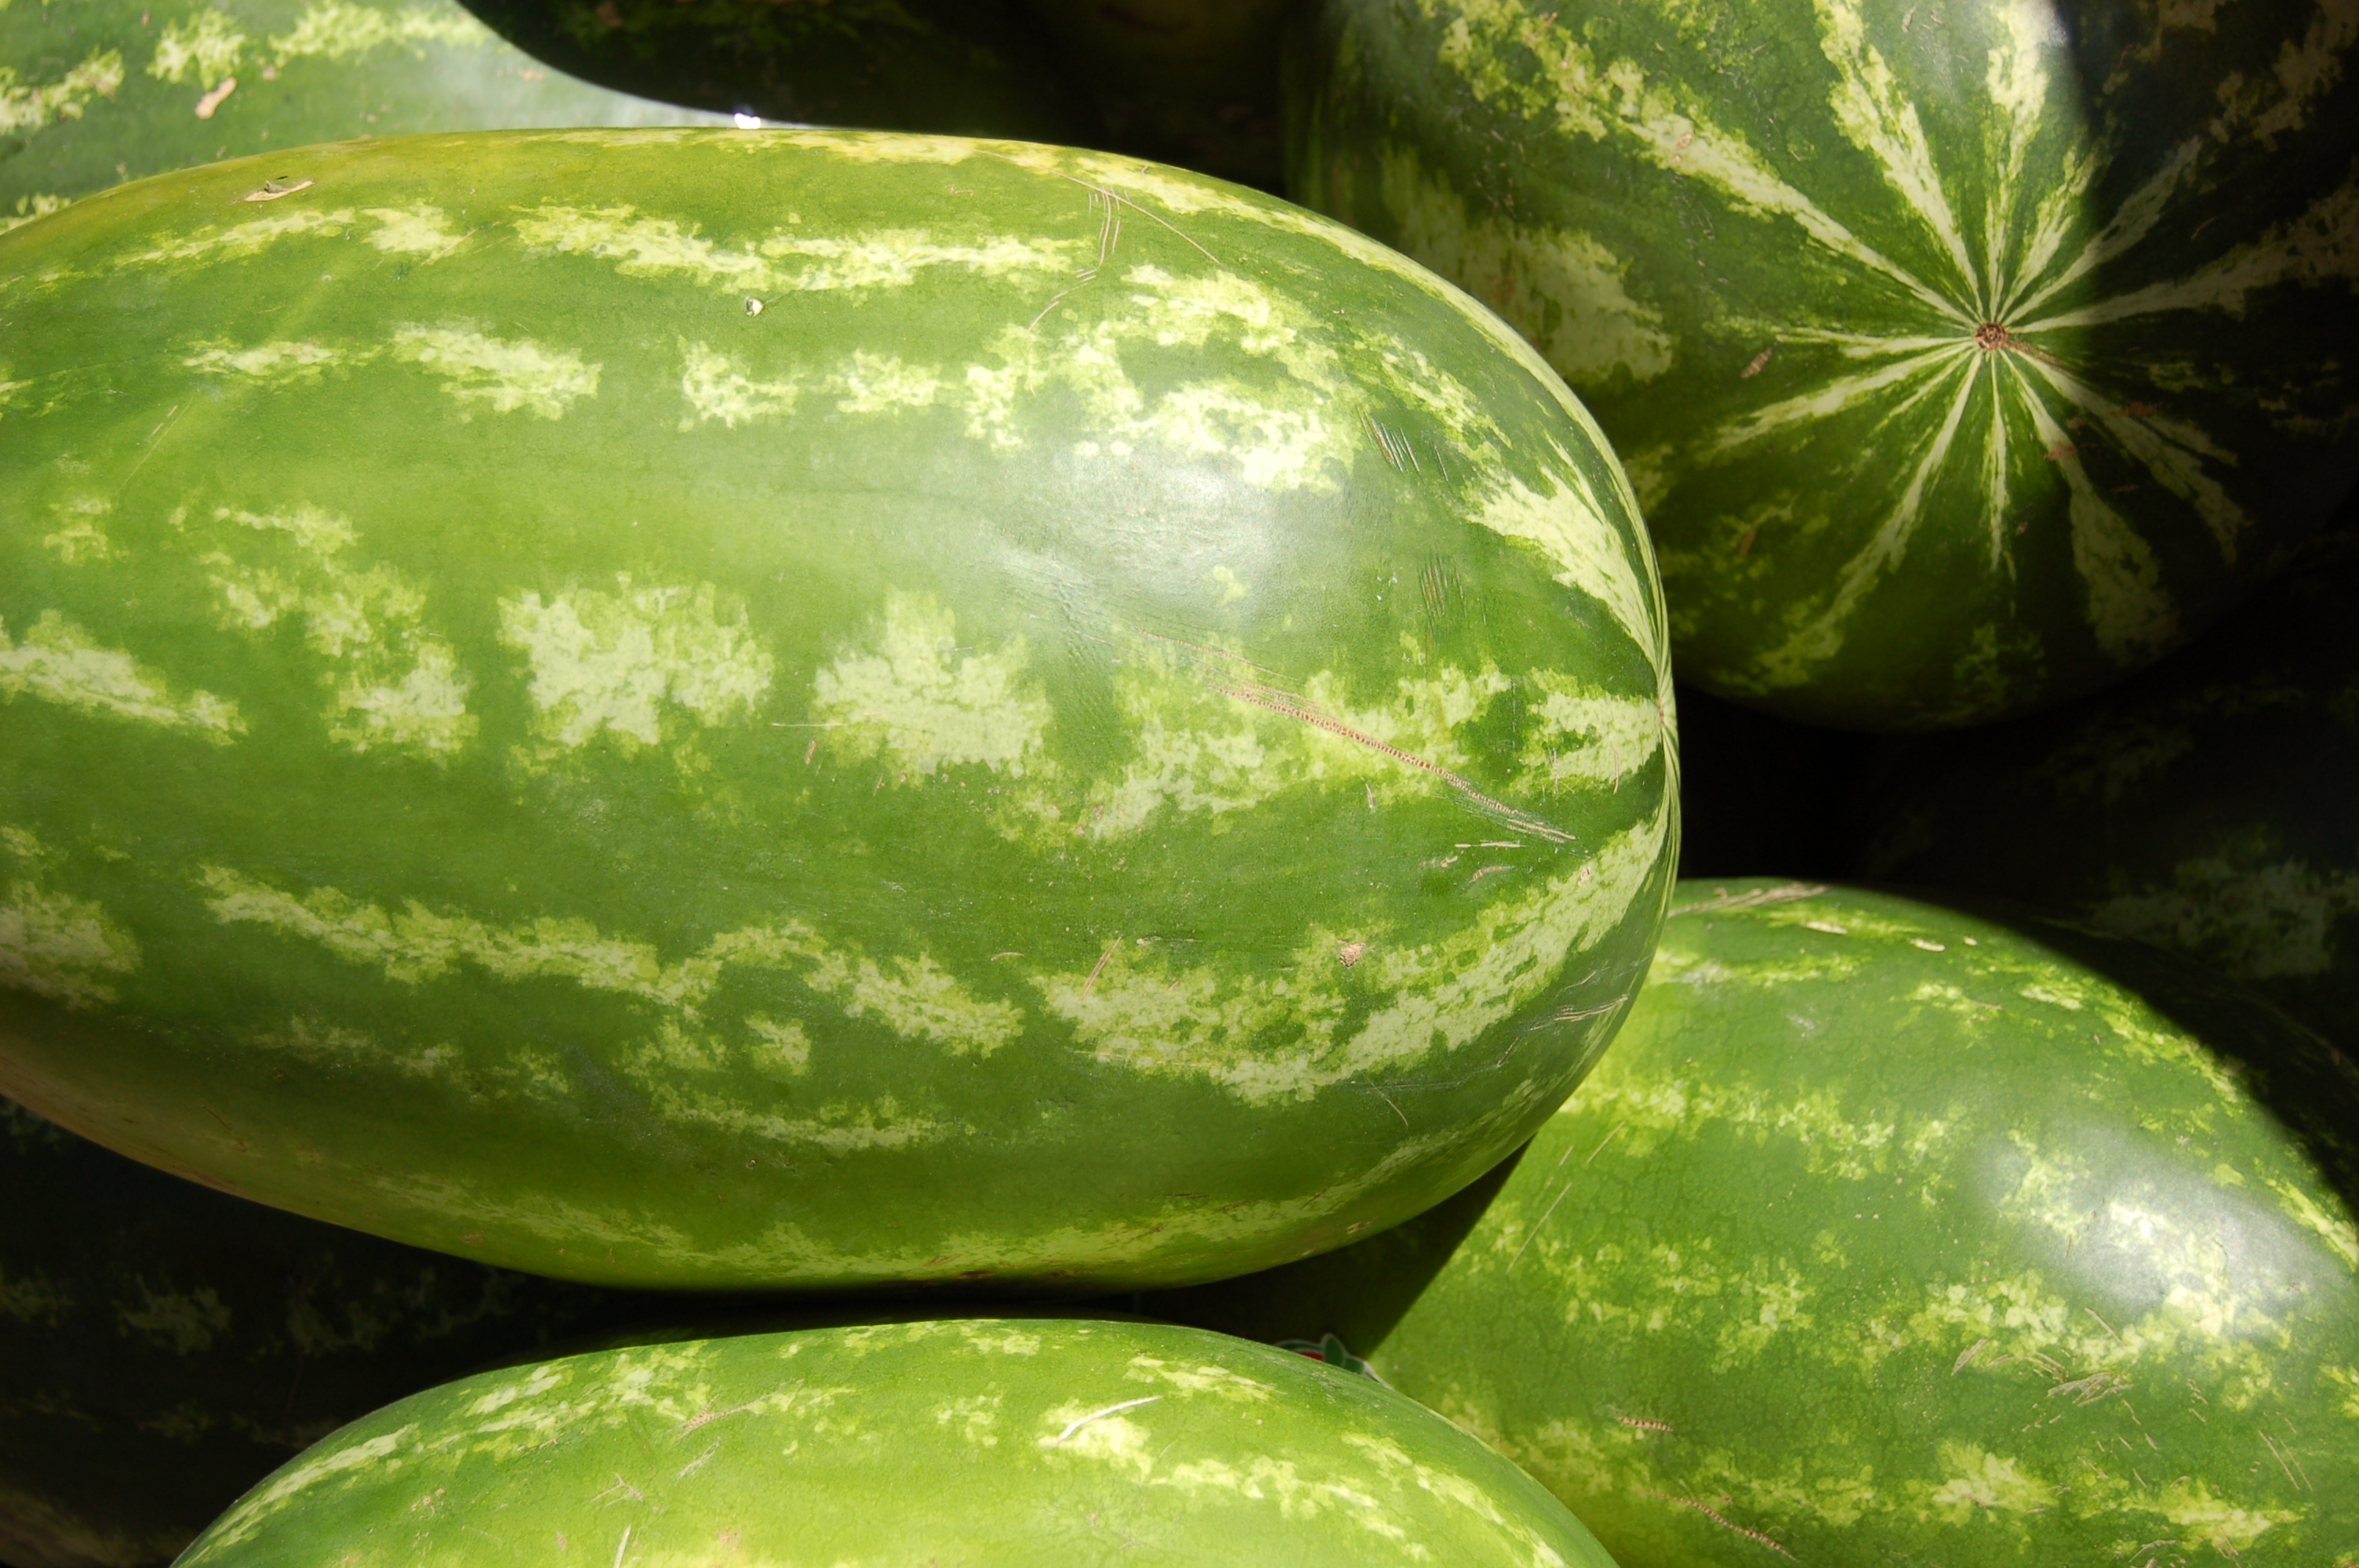 History Of The Watermelon File Pasteque Jpg Wikimedia Commons